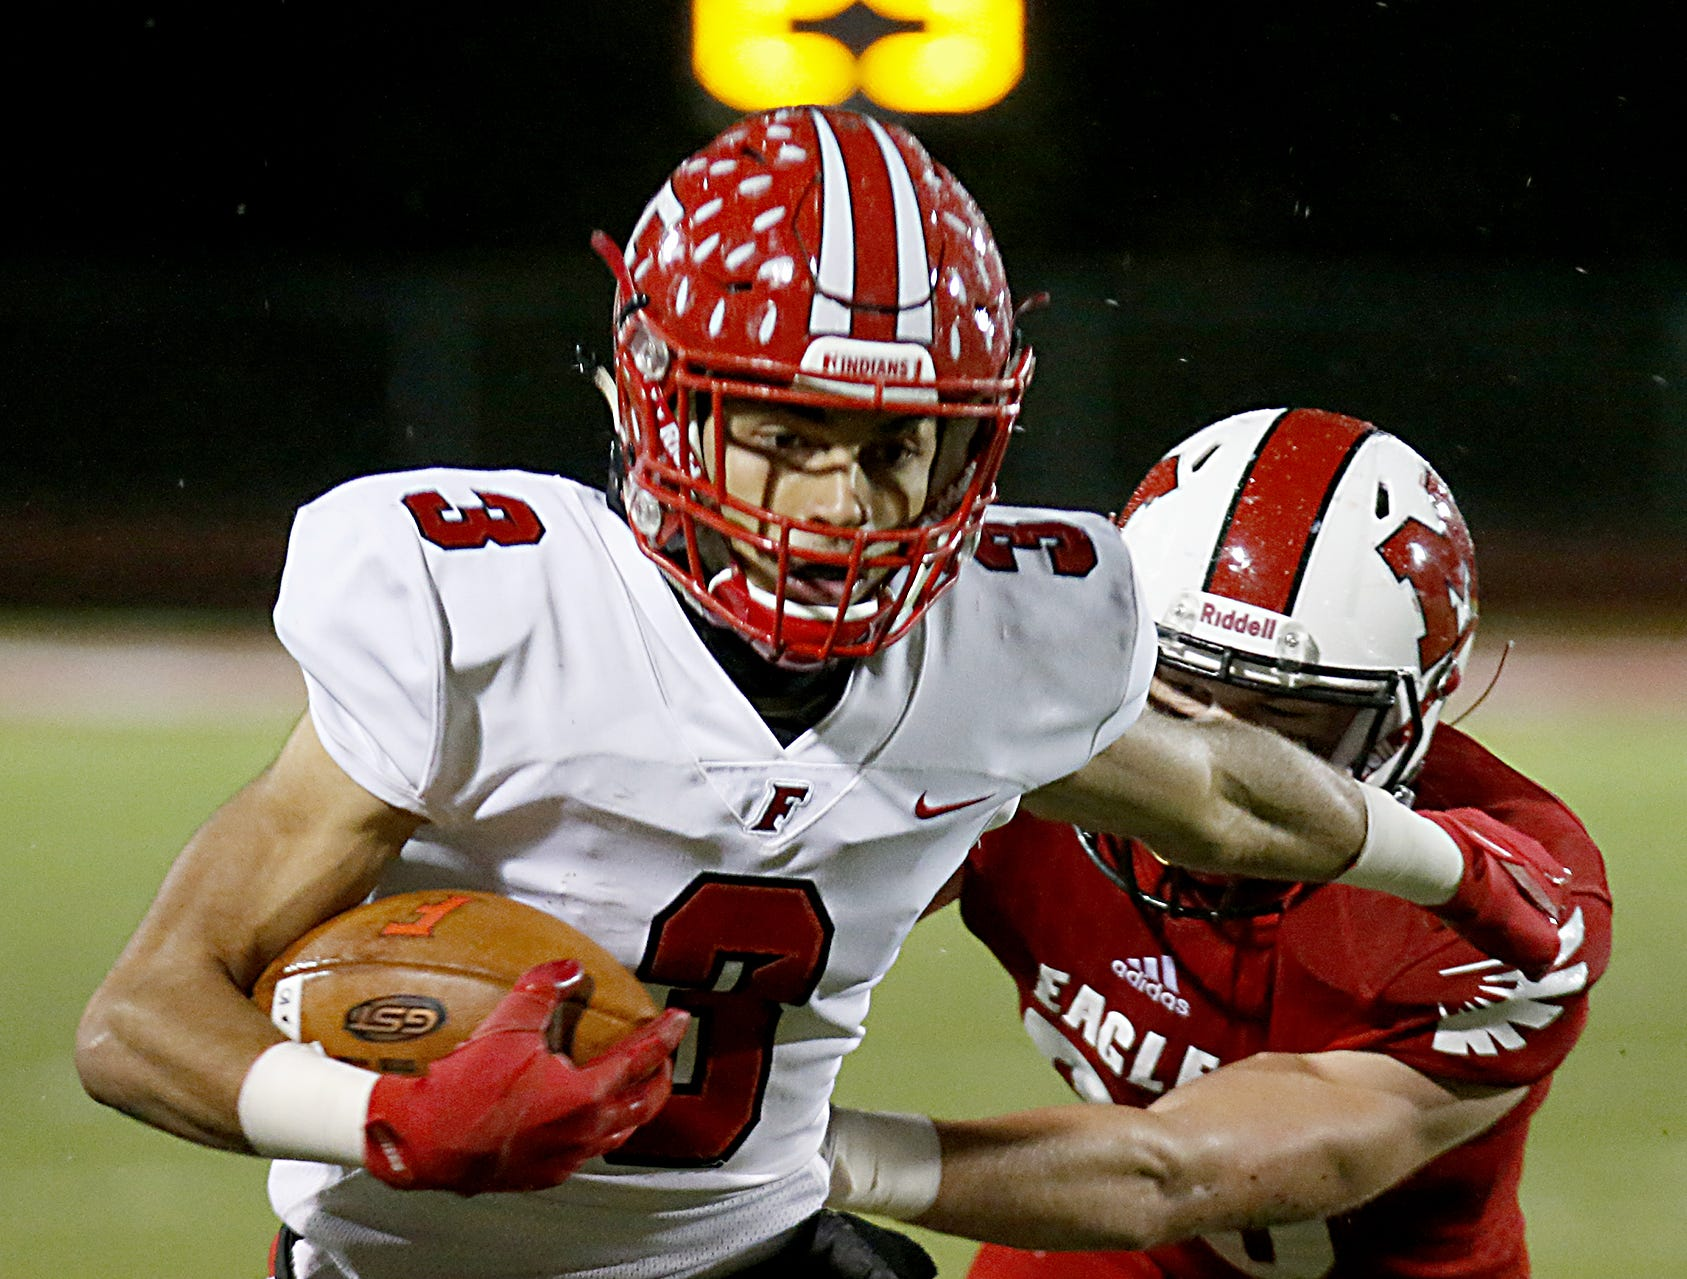 Fairfield wide receiver Peyton Brown escapes Milford defensive back Jared Engelman and runs for a touchdown during their Division I playoff game at Eagle Stadium in Milford Friday, Nov. 2, 2018.